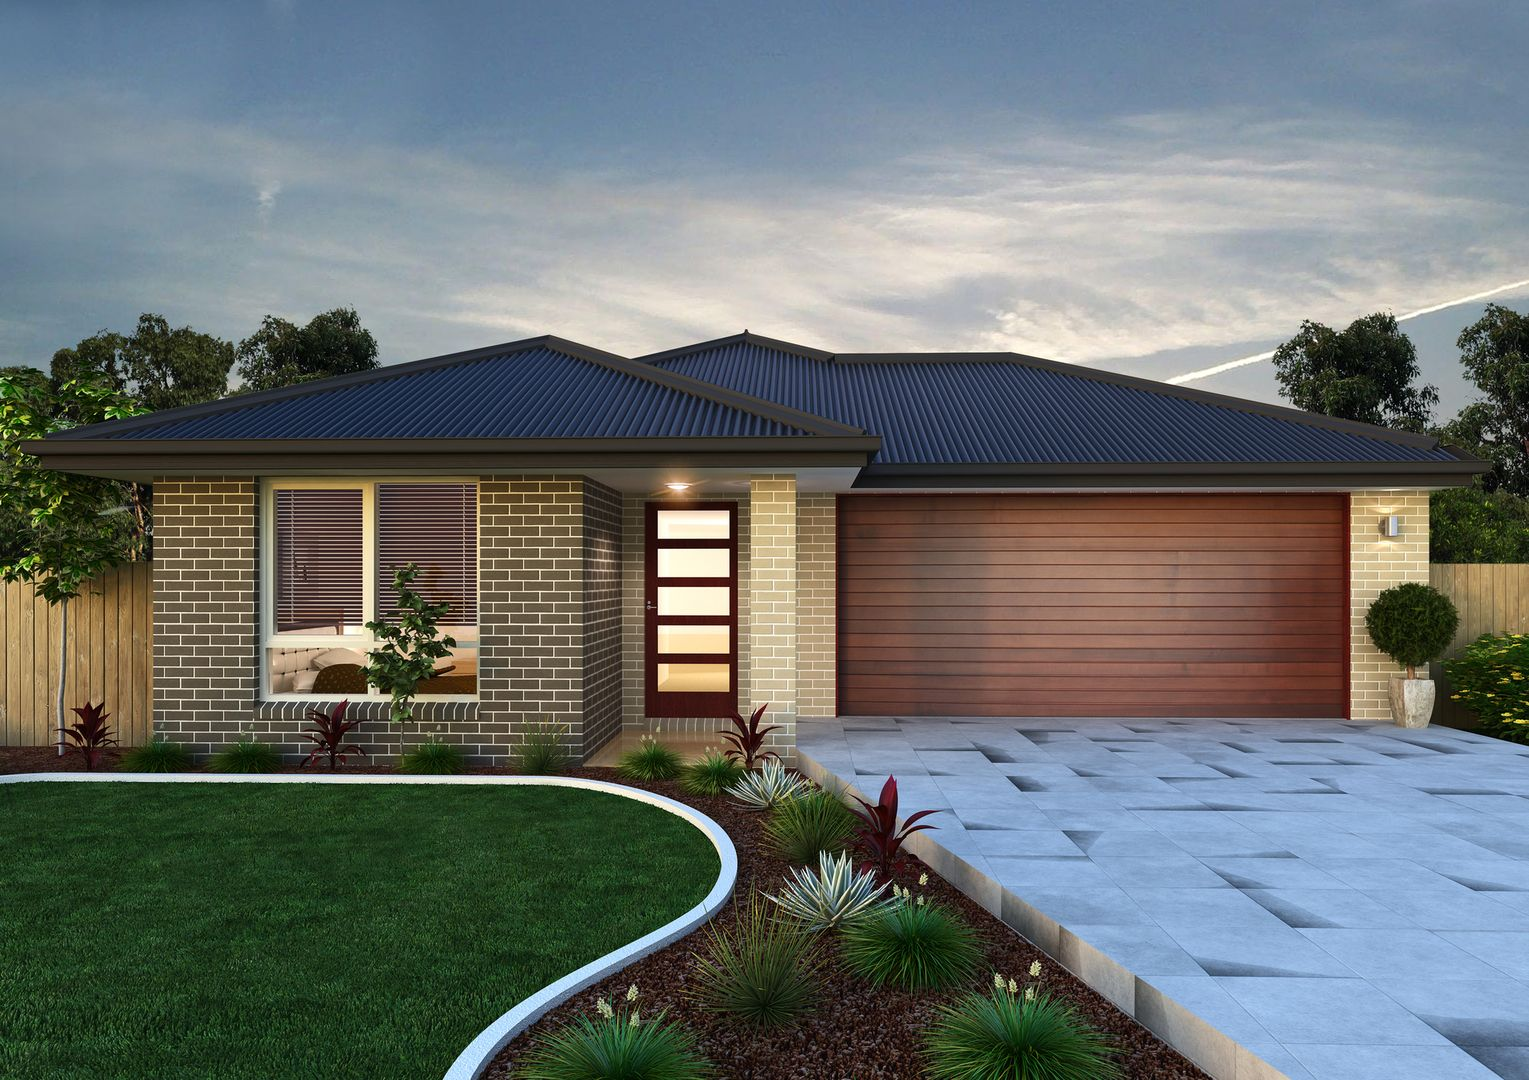 [SUPER 6] LOT 12 KINGFISHER COURT, Tinana QLD 4650, Image 0